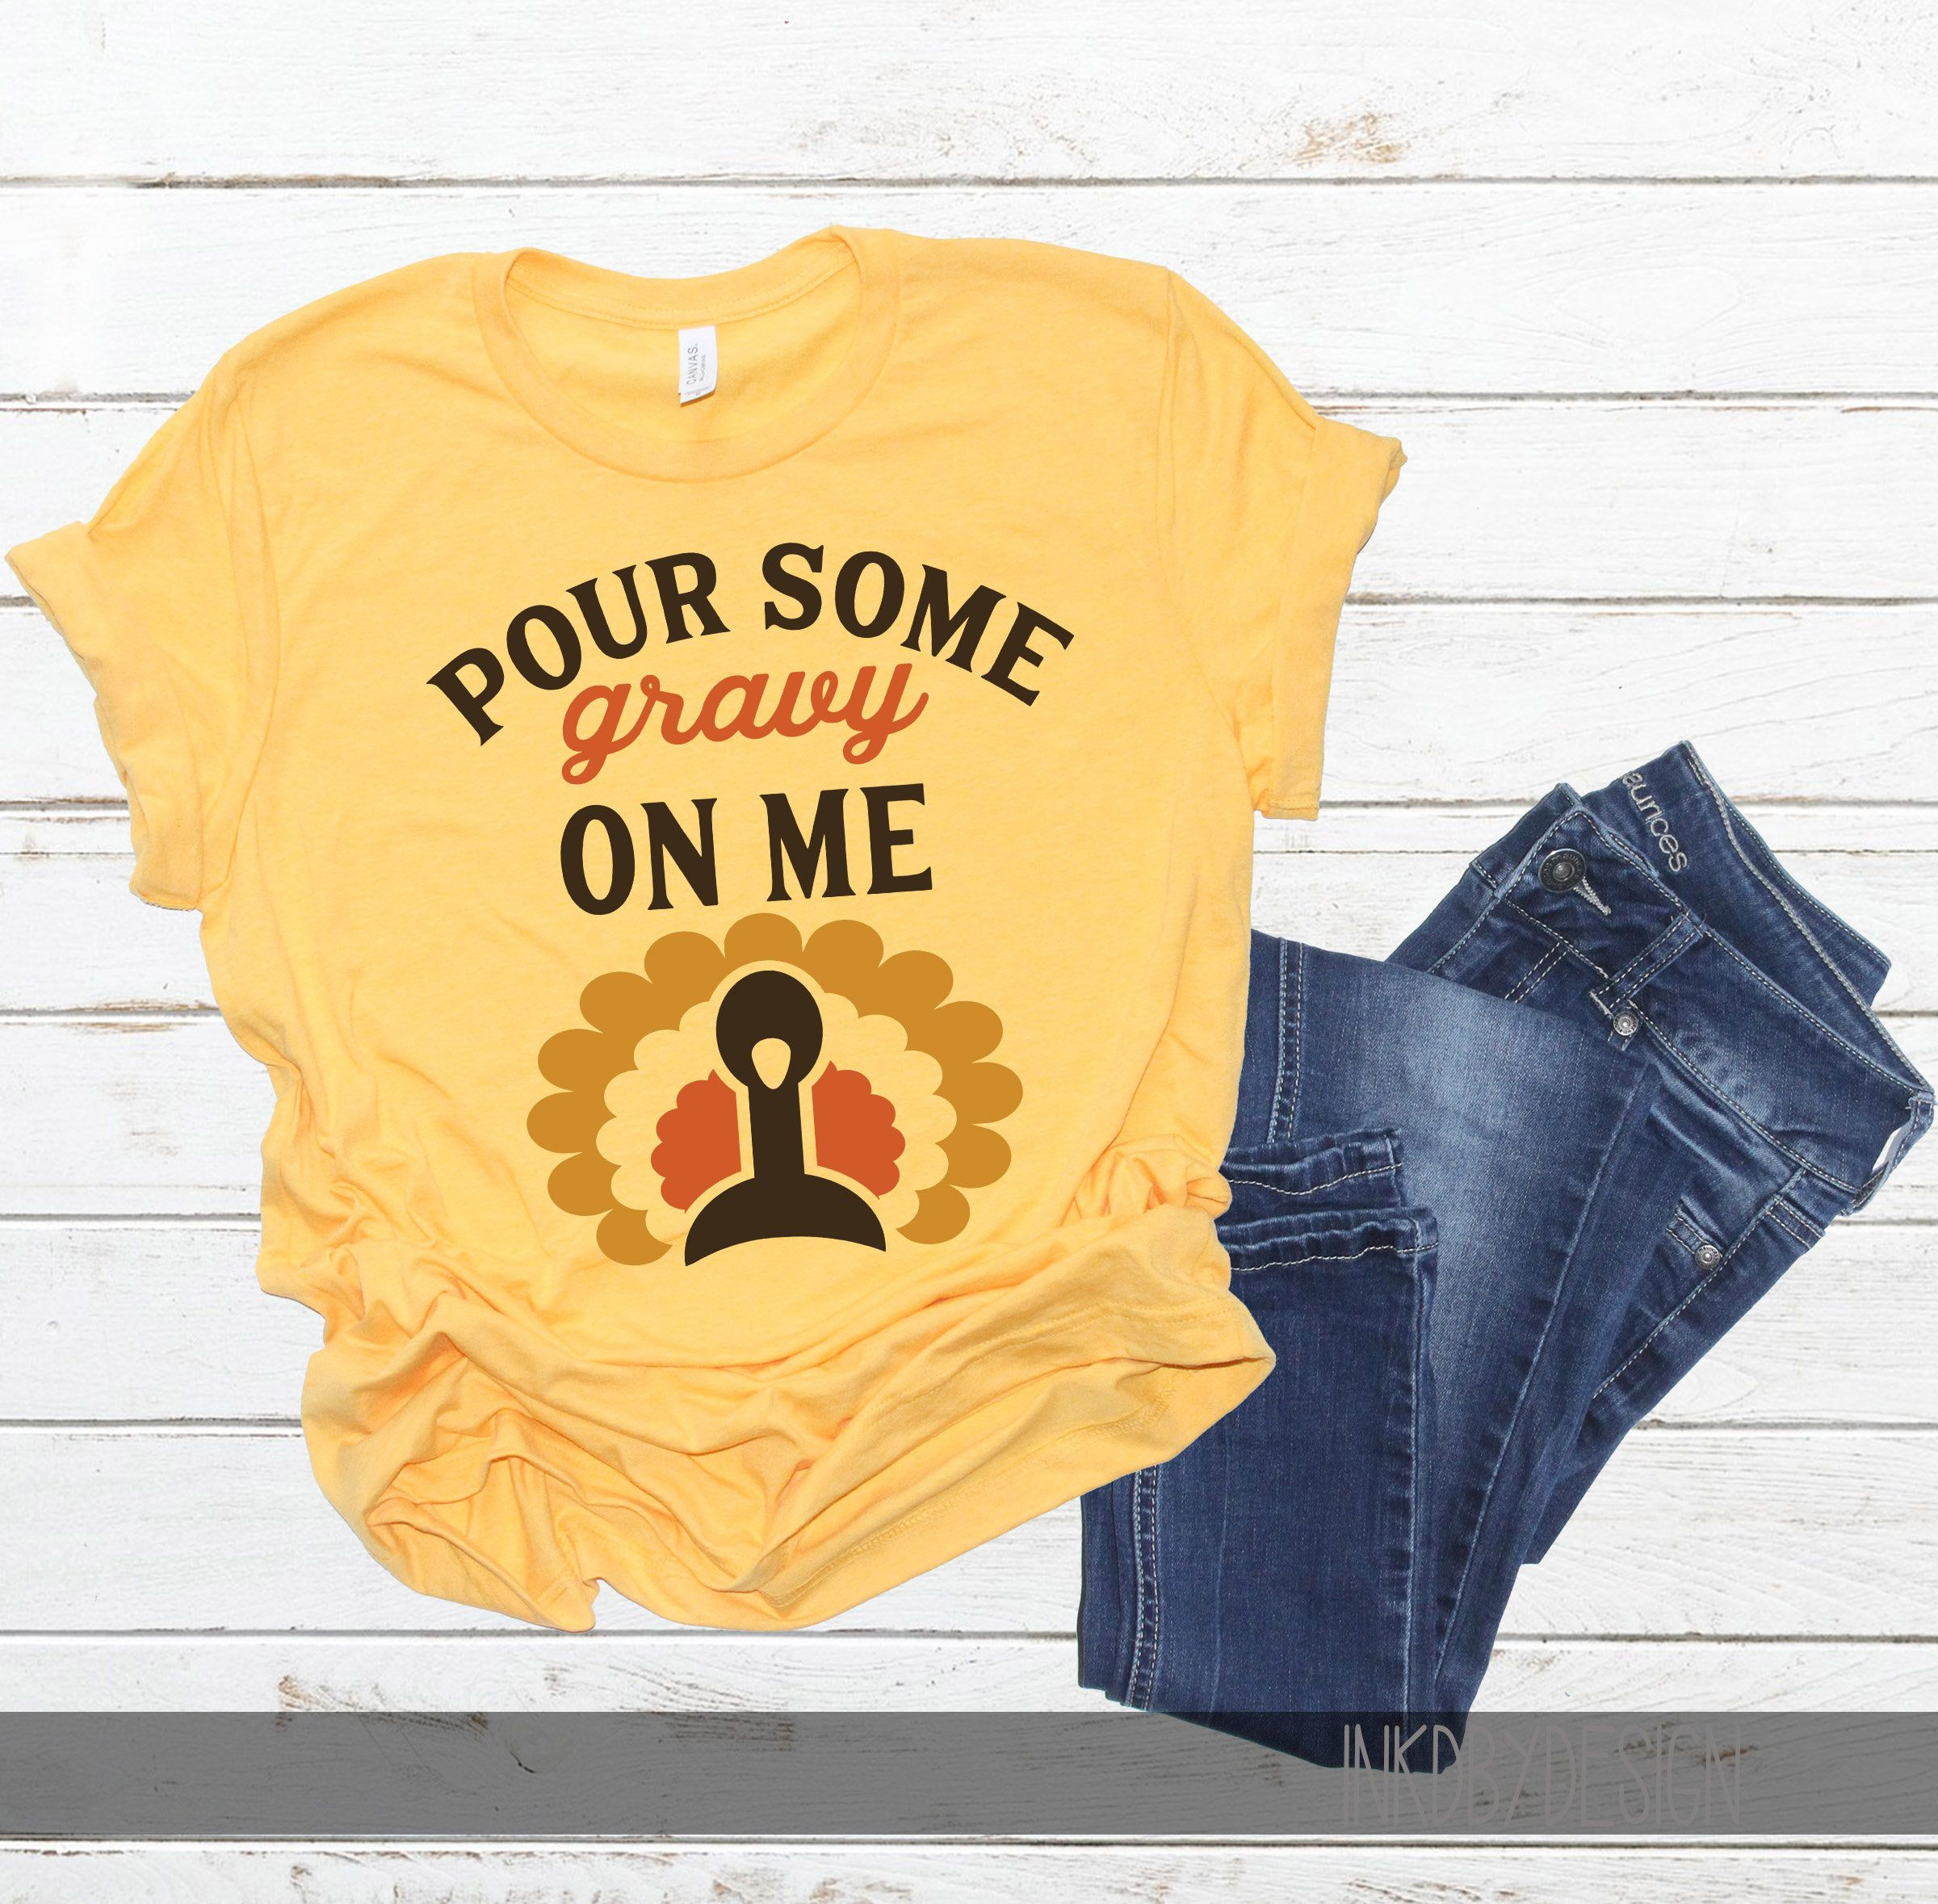 Pour Some Gravy on Me, Fall themed Shirts, Funny